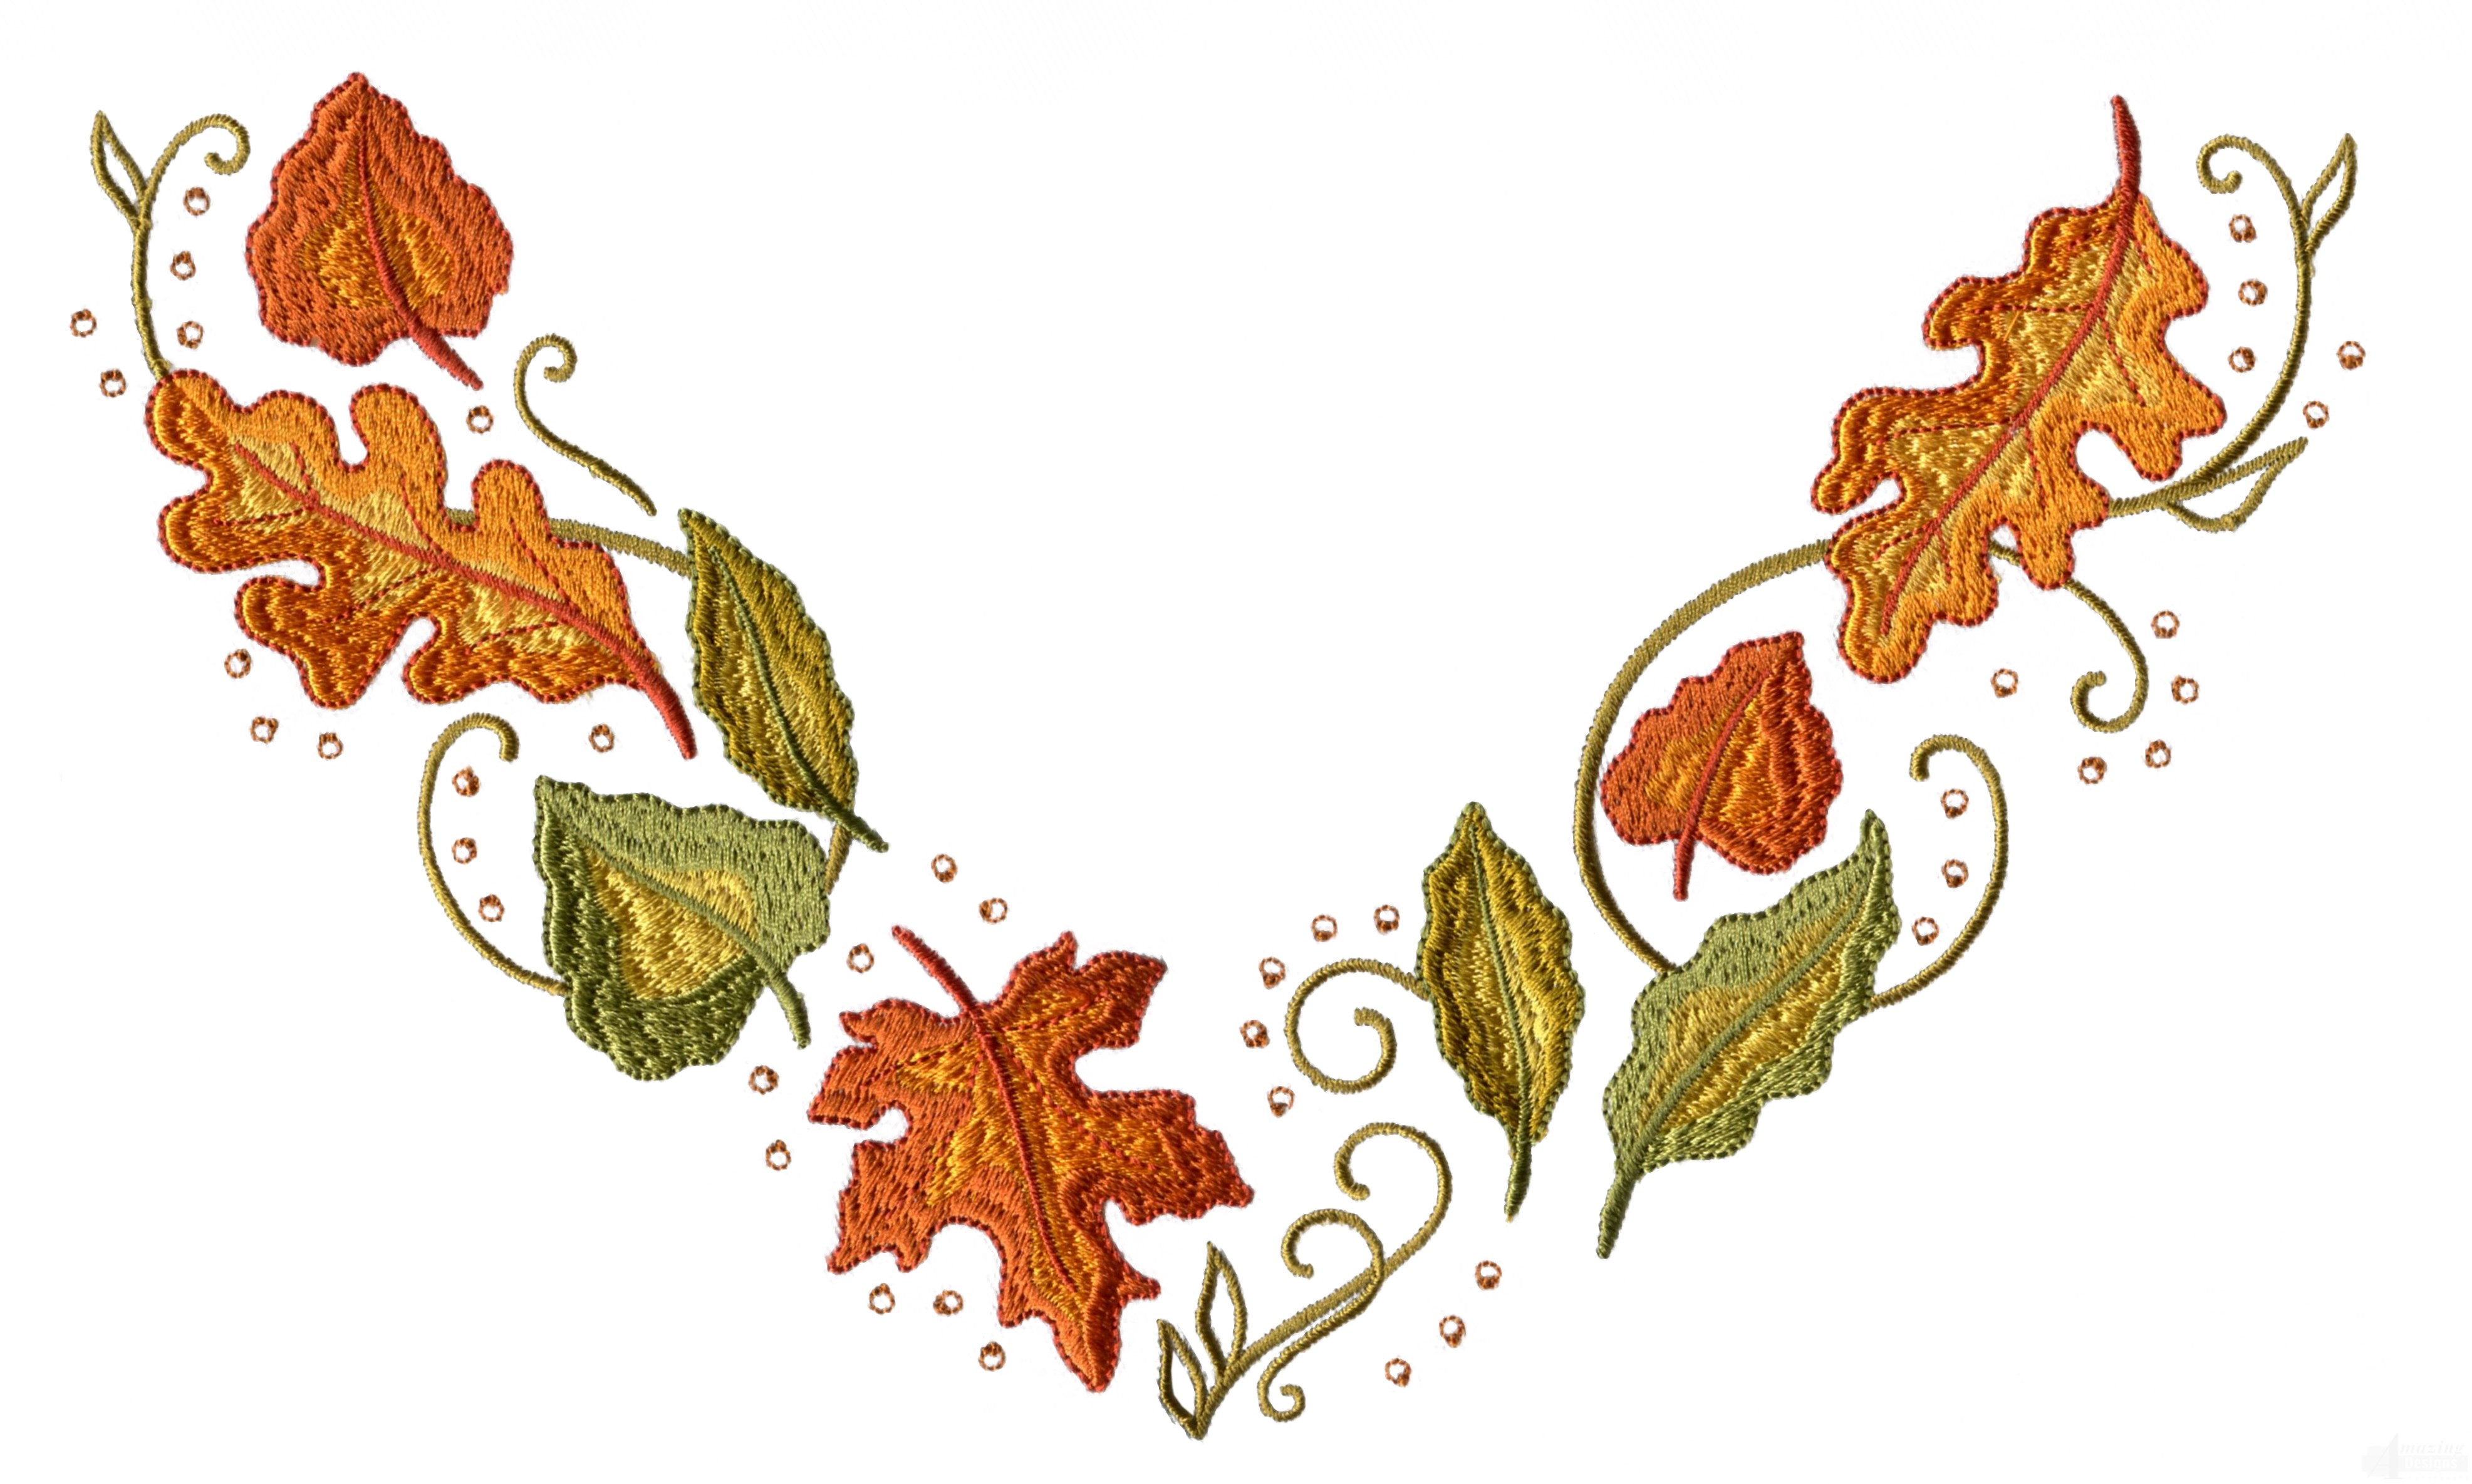 Autumn Leaves Jeweled Neckline Embroidery Design